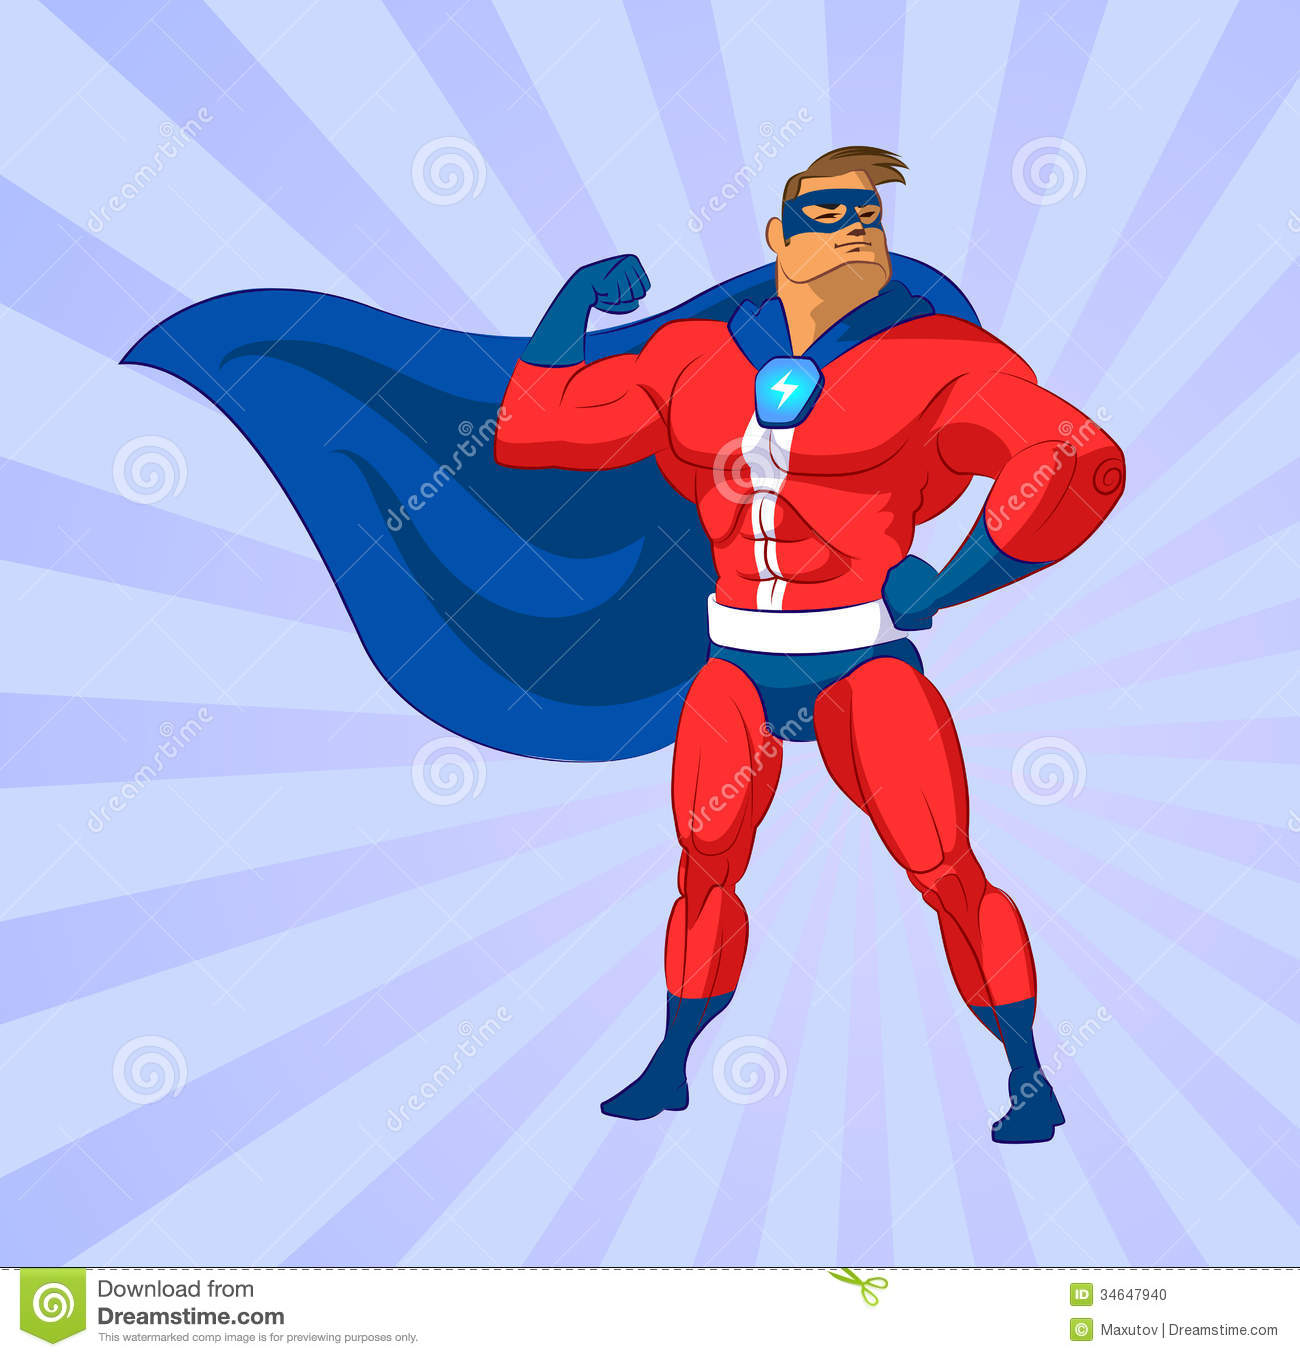 Superhero or superman flying. Vector illustration on background.